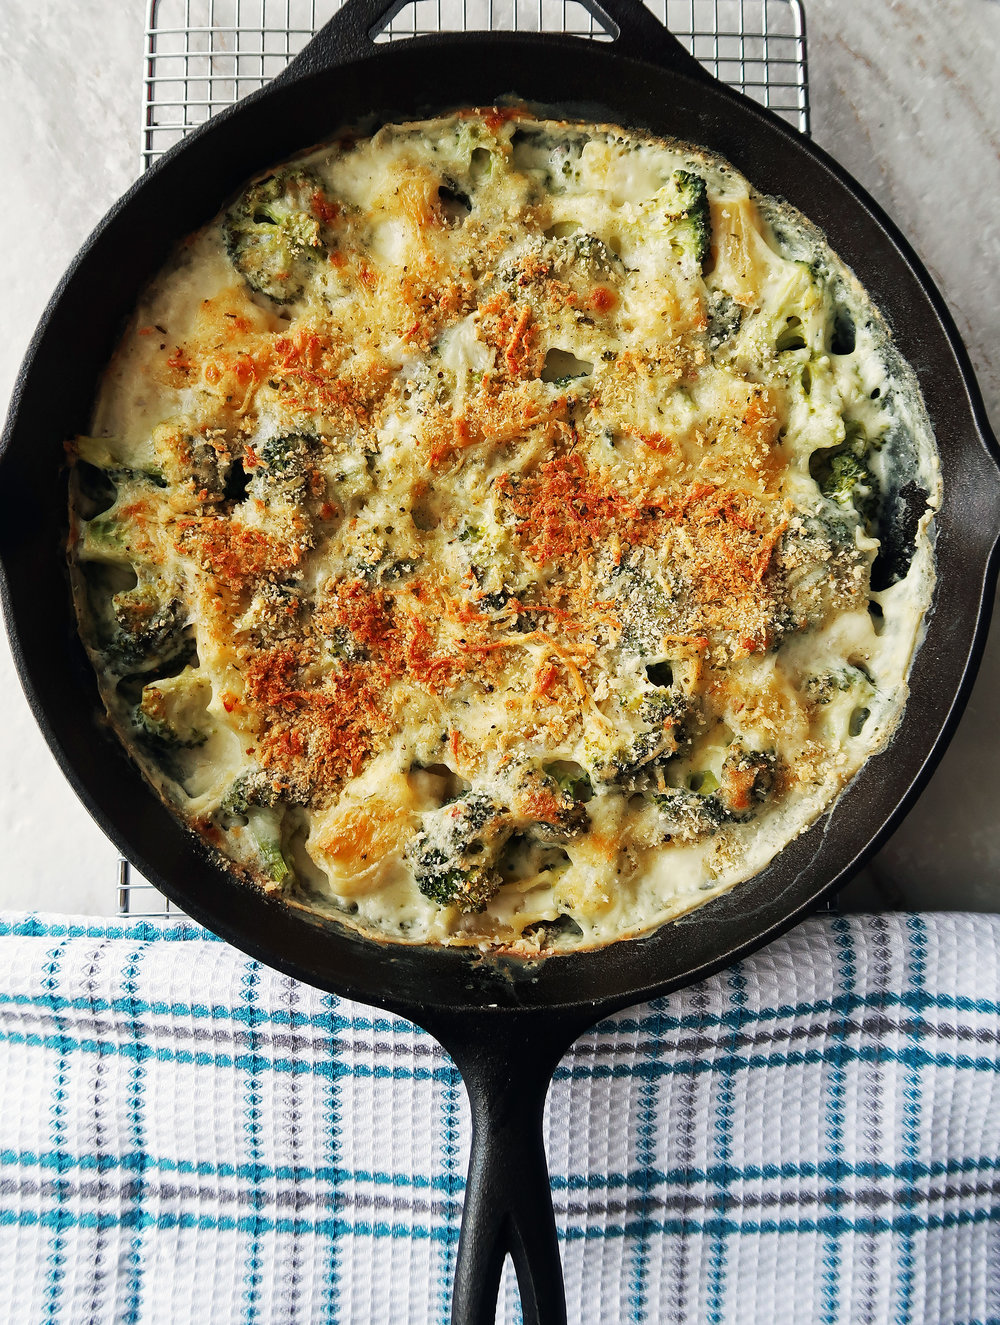 One Skillet Pasta Bake with Broccoli and White Cheese Sauce cooling on a rack.